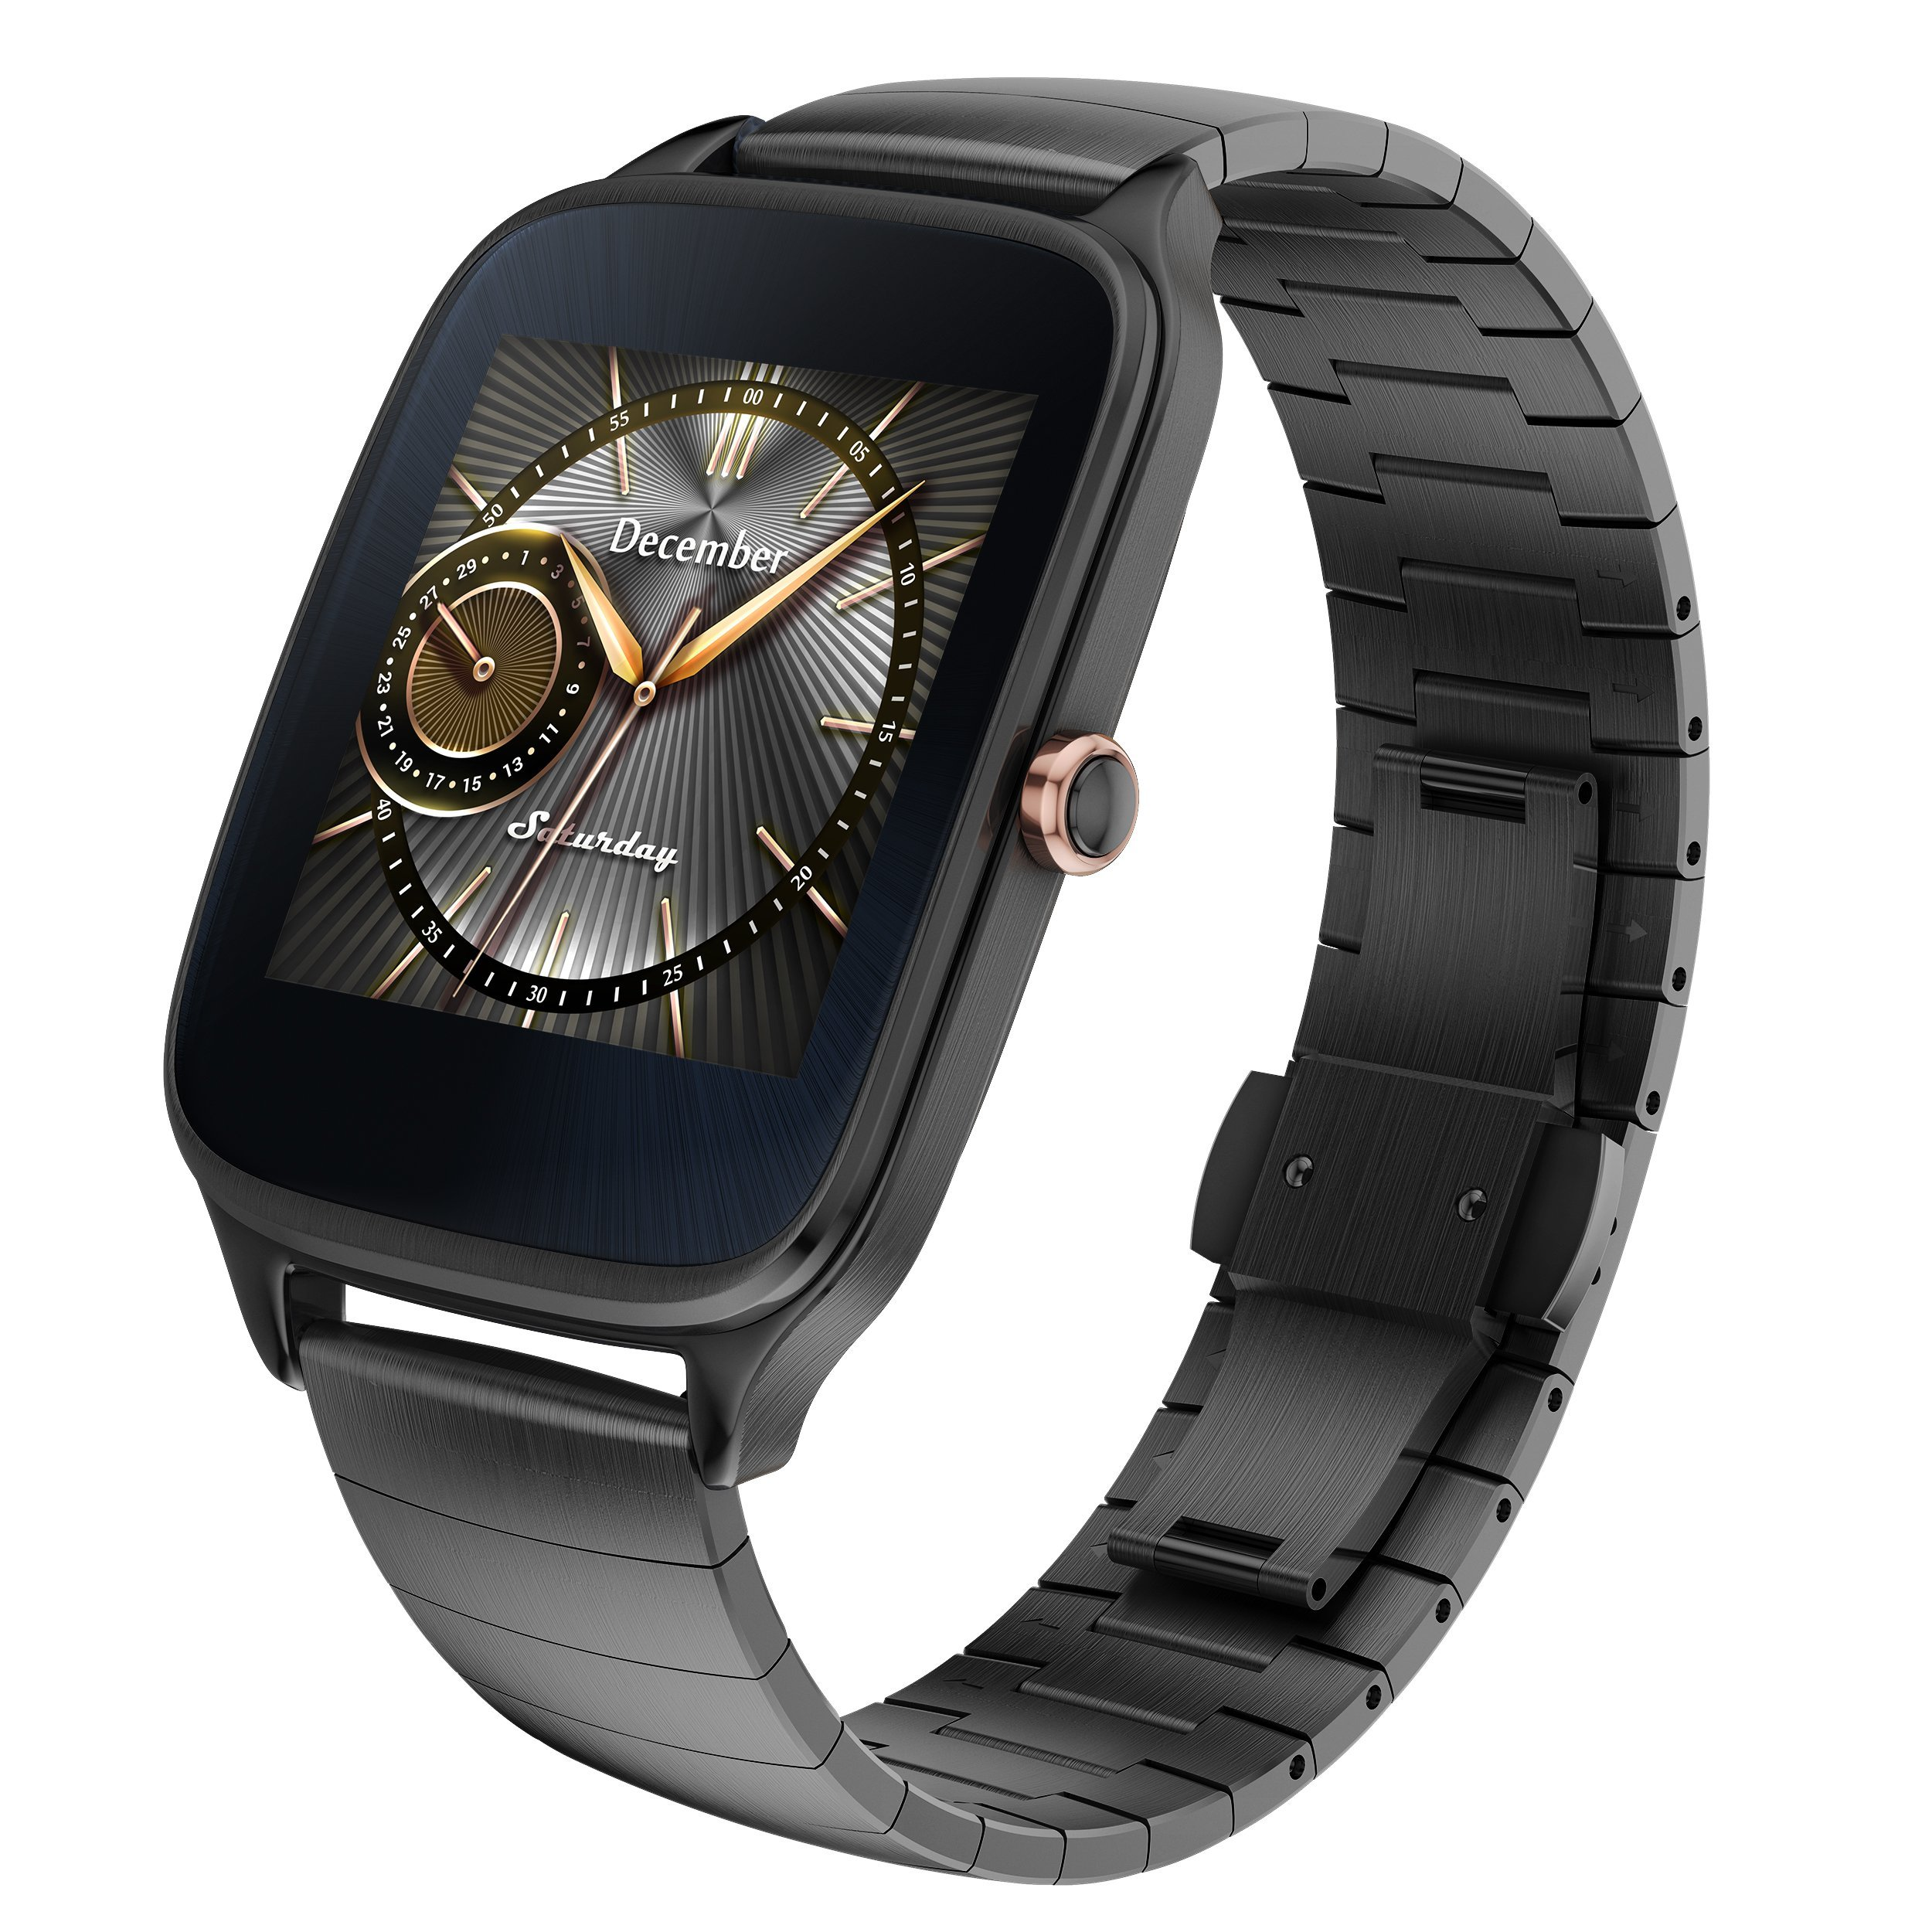 ASUS ZenWatch 2 Gunmetal Gray 41mm Smart Watch with HyperCharge Battery, 1.63-inch AMOLED Gorilla Glass 3 TouchScreen, 4GB Storage, IP67 Water Resistant by Asus (Image #2)